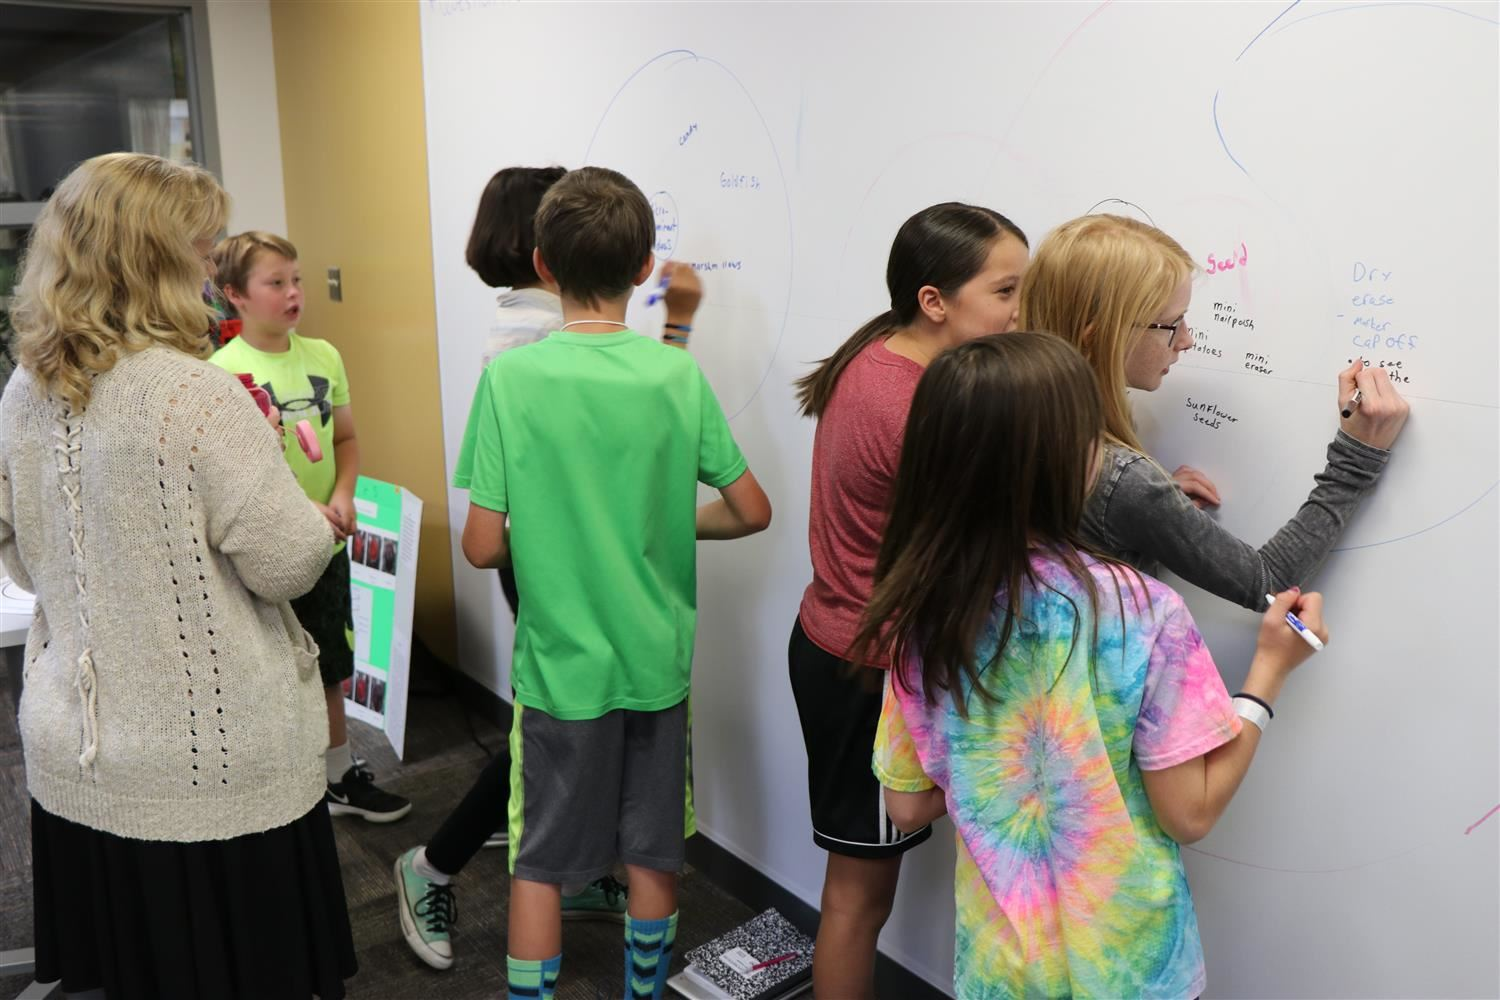 Six different students record answers on a floor-to-wall dry erase board.